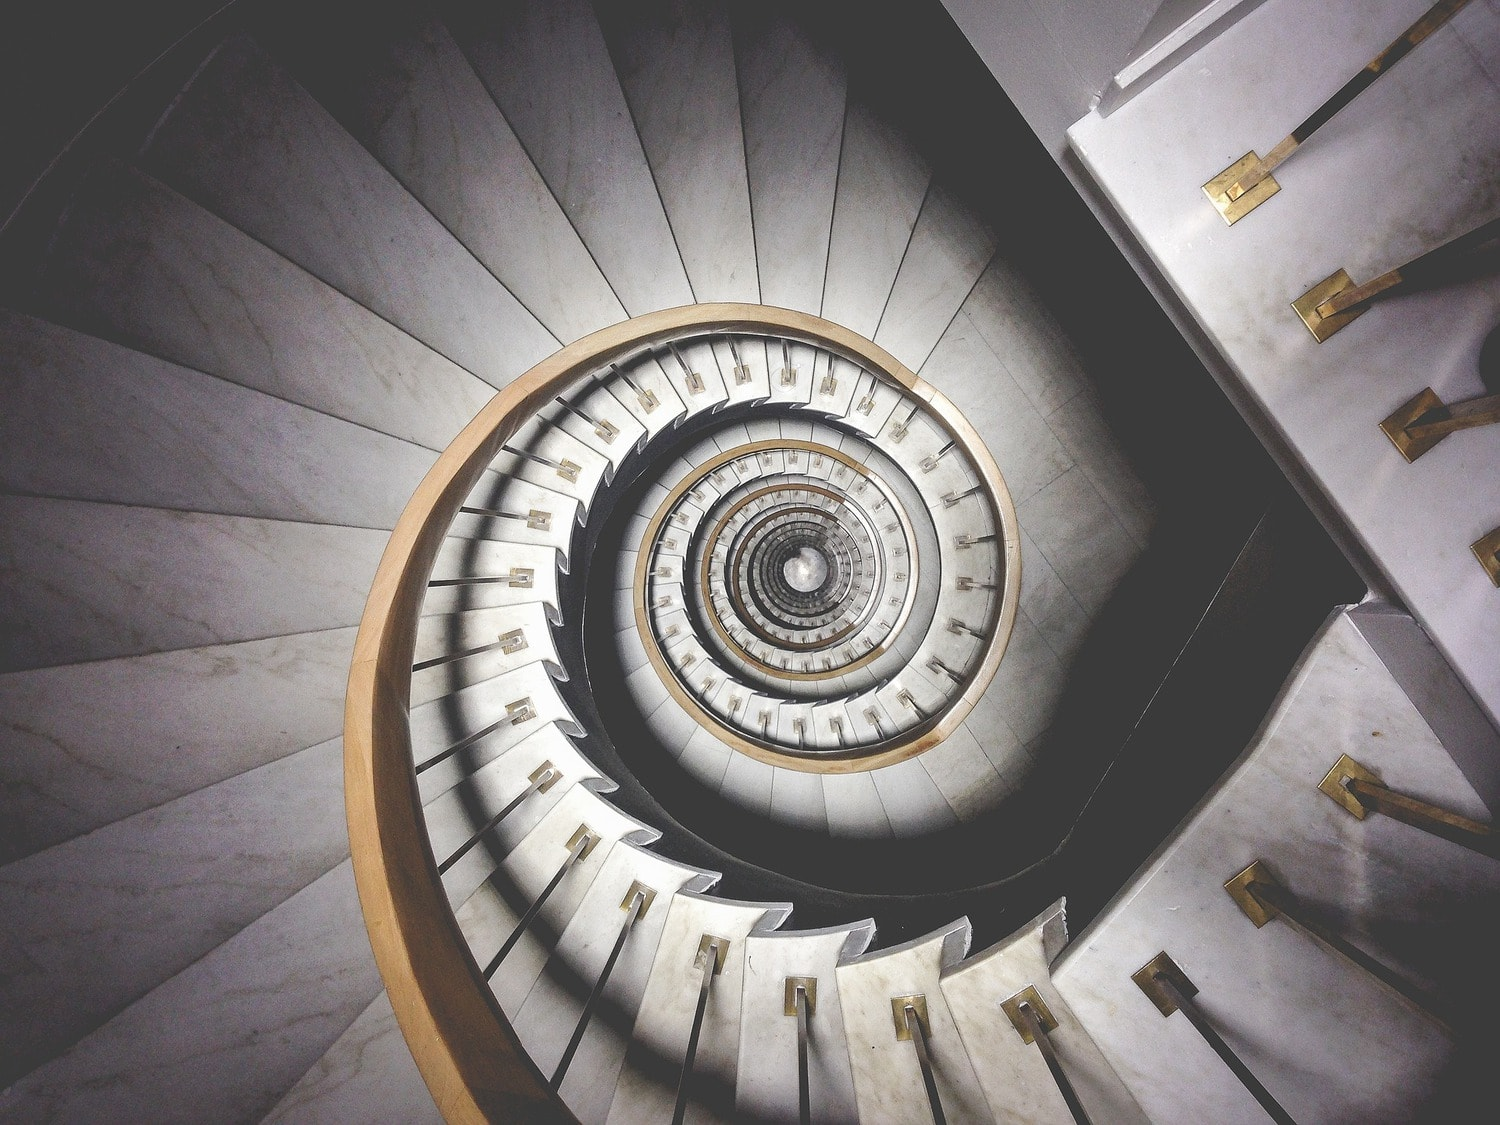 Espiral capturada por Unsplash